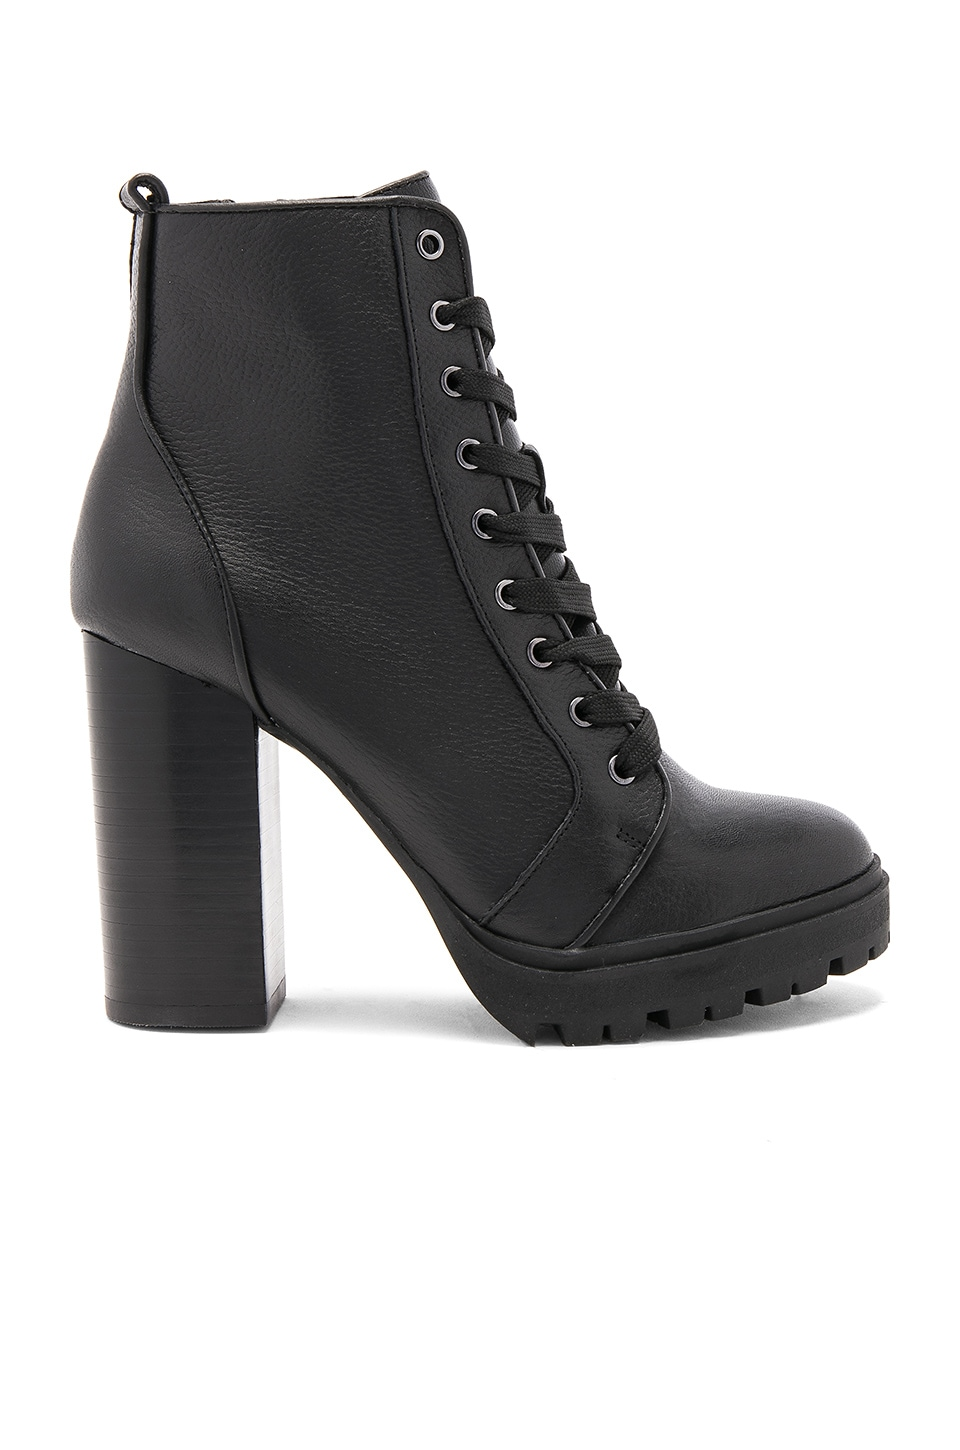 Steve Madden Laurie Bootie in Black Leather